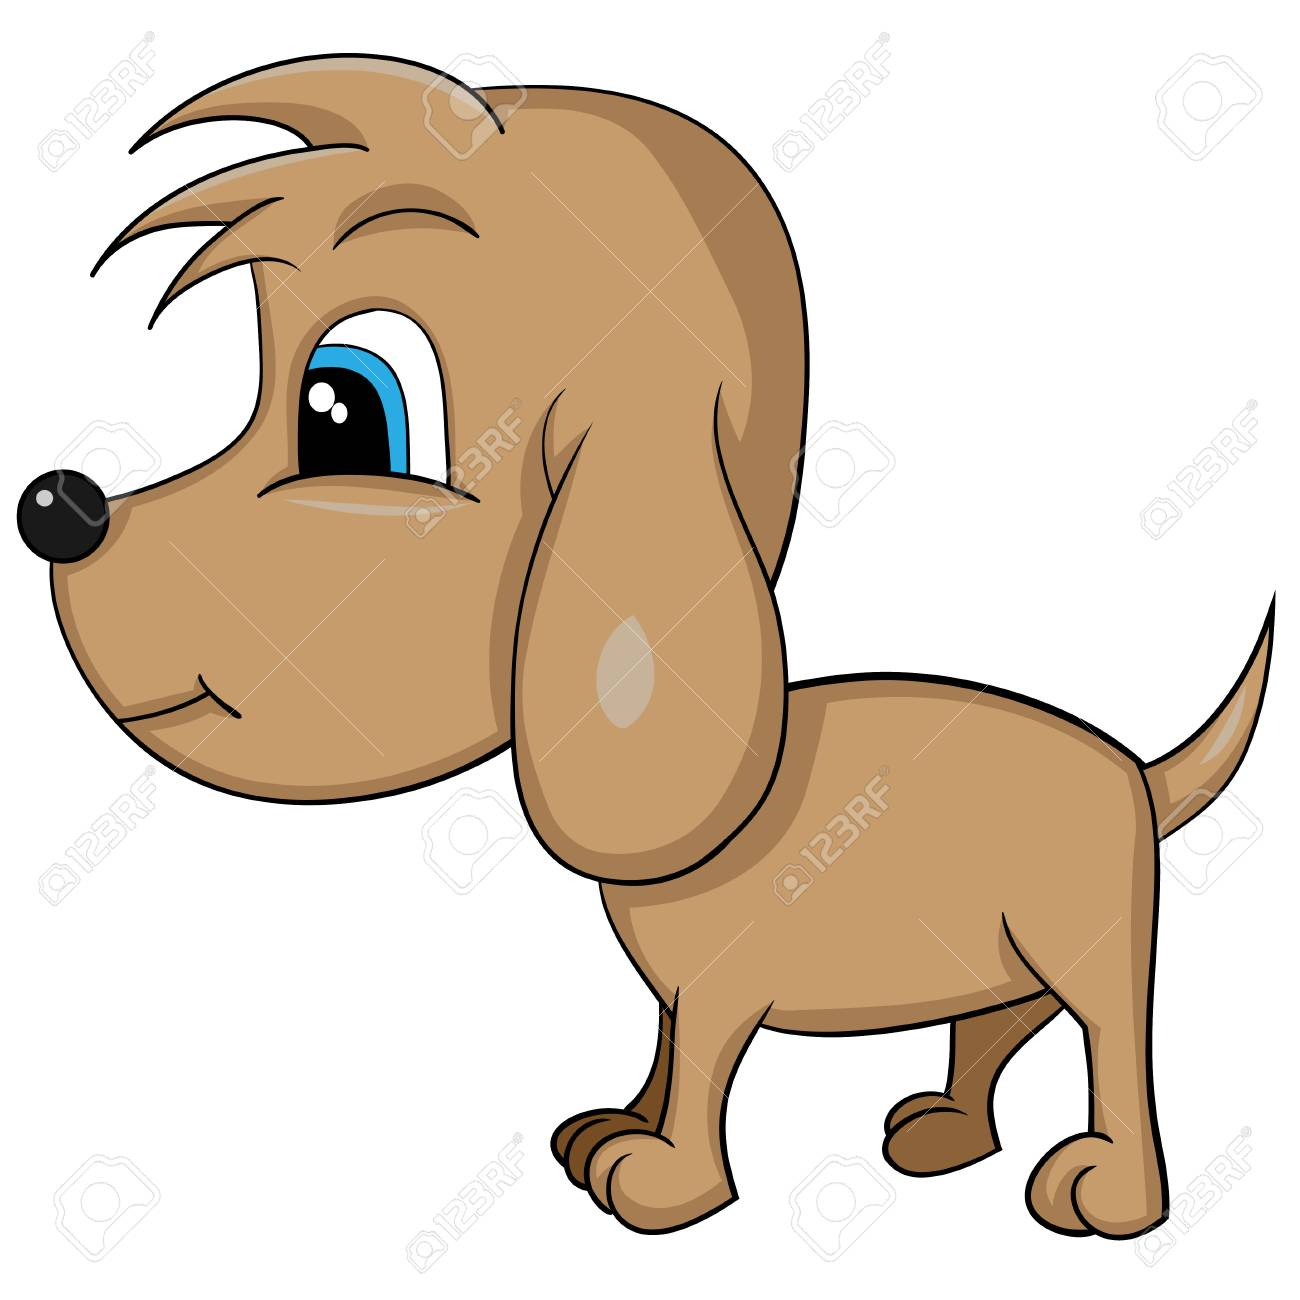 illustration of isolated cartoon cute dog vector eps 8 royalty rh 123rf com dog vector images dog vectors free download